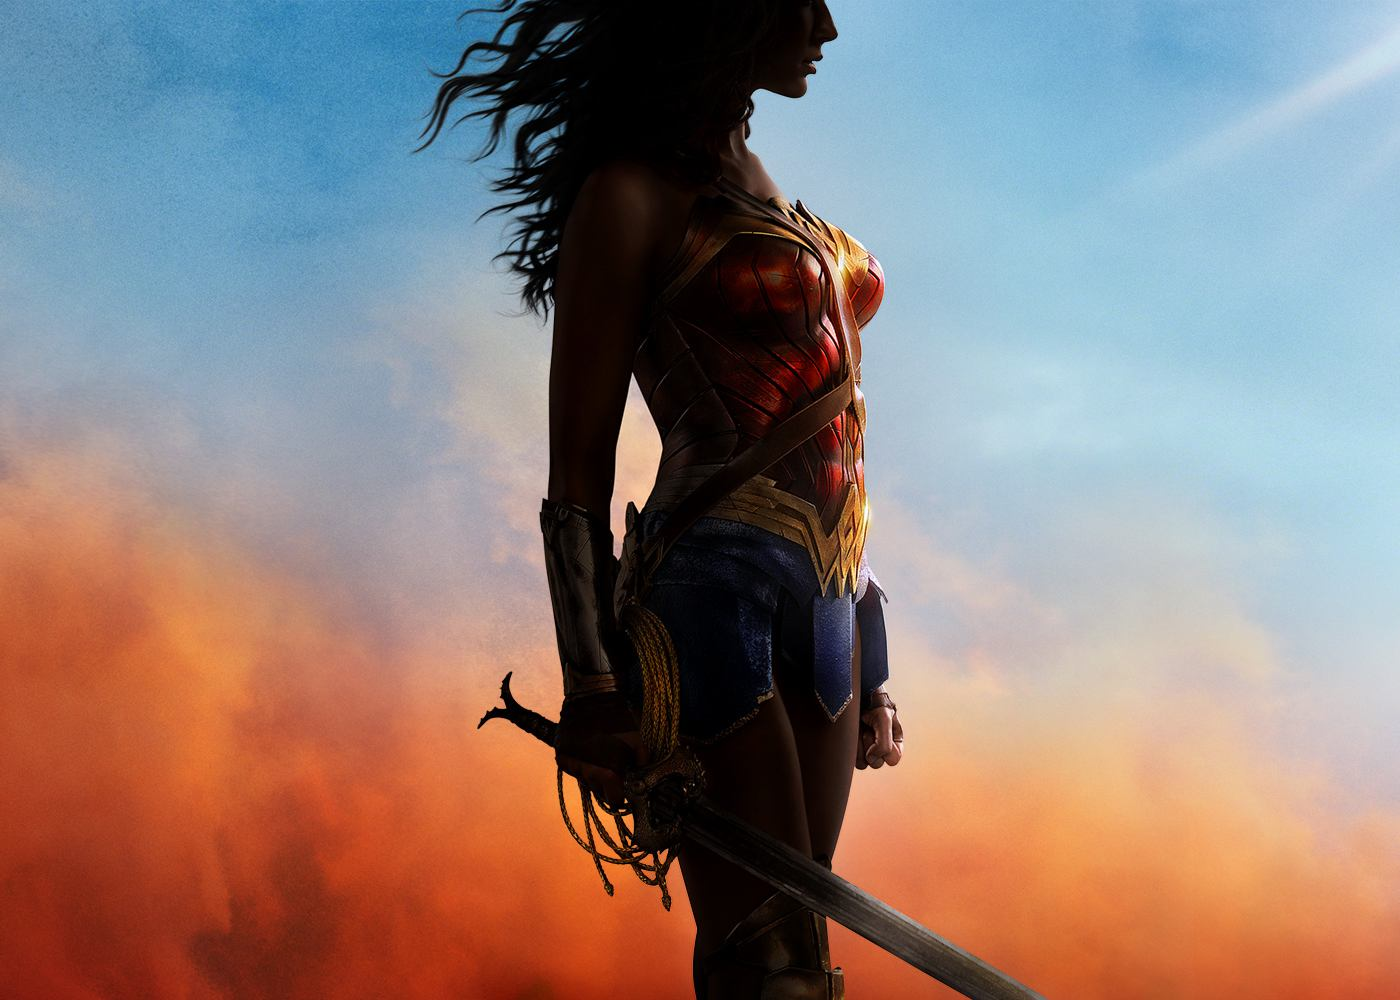 Critics Have Shared Their Thoughts on Wonder Woman